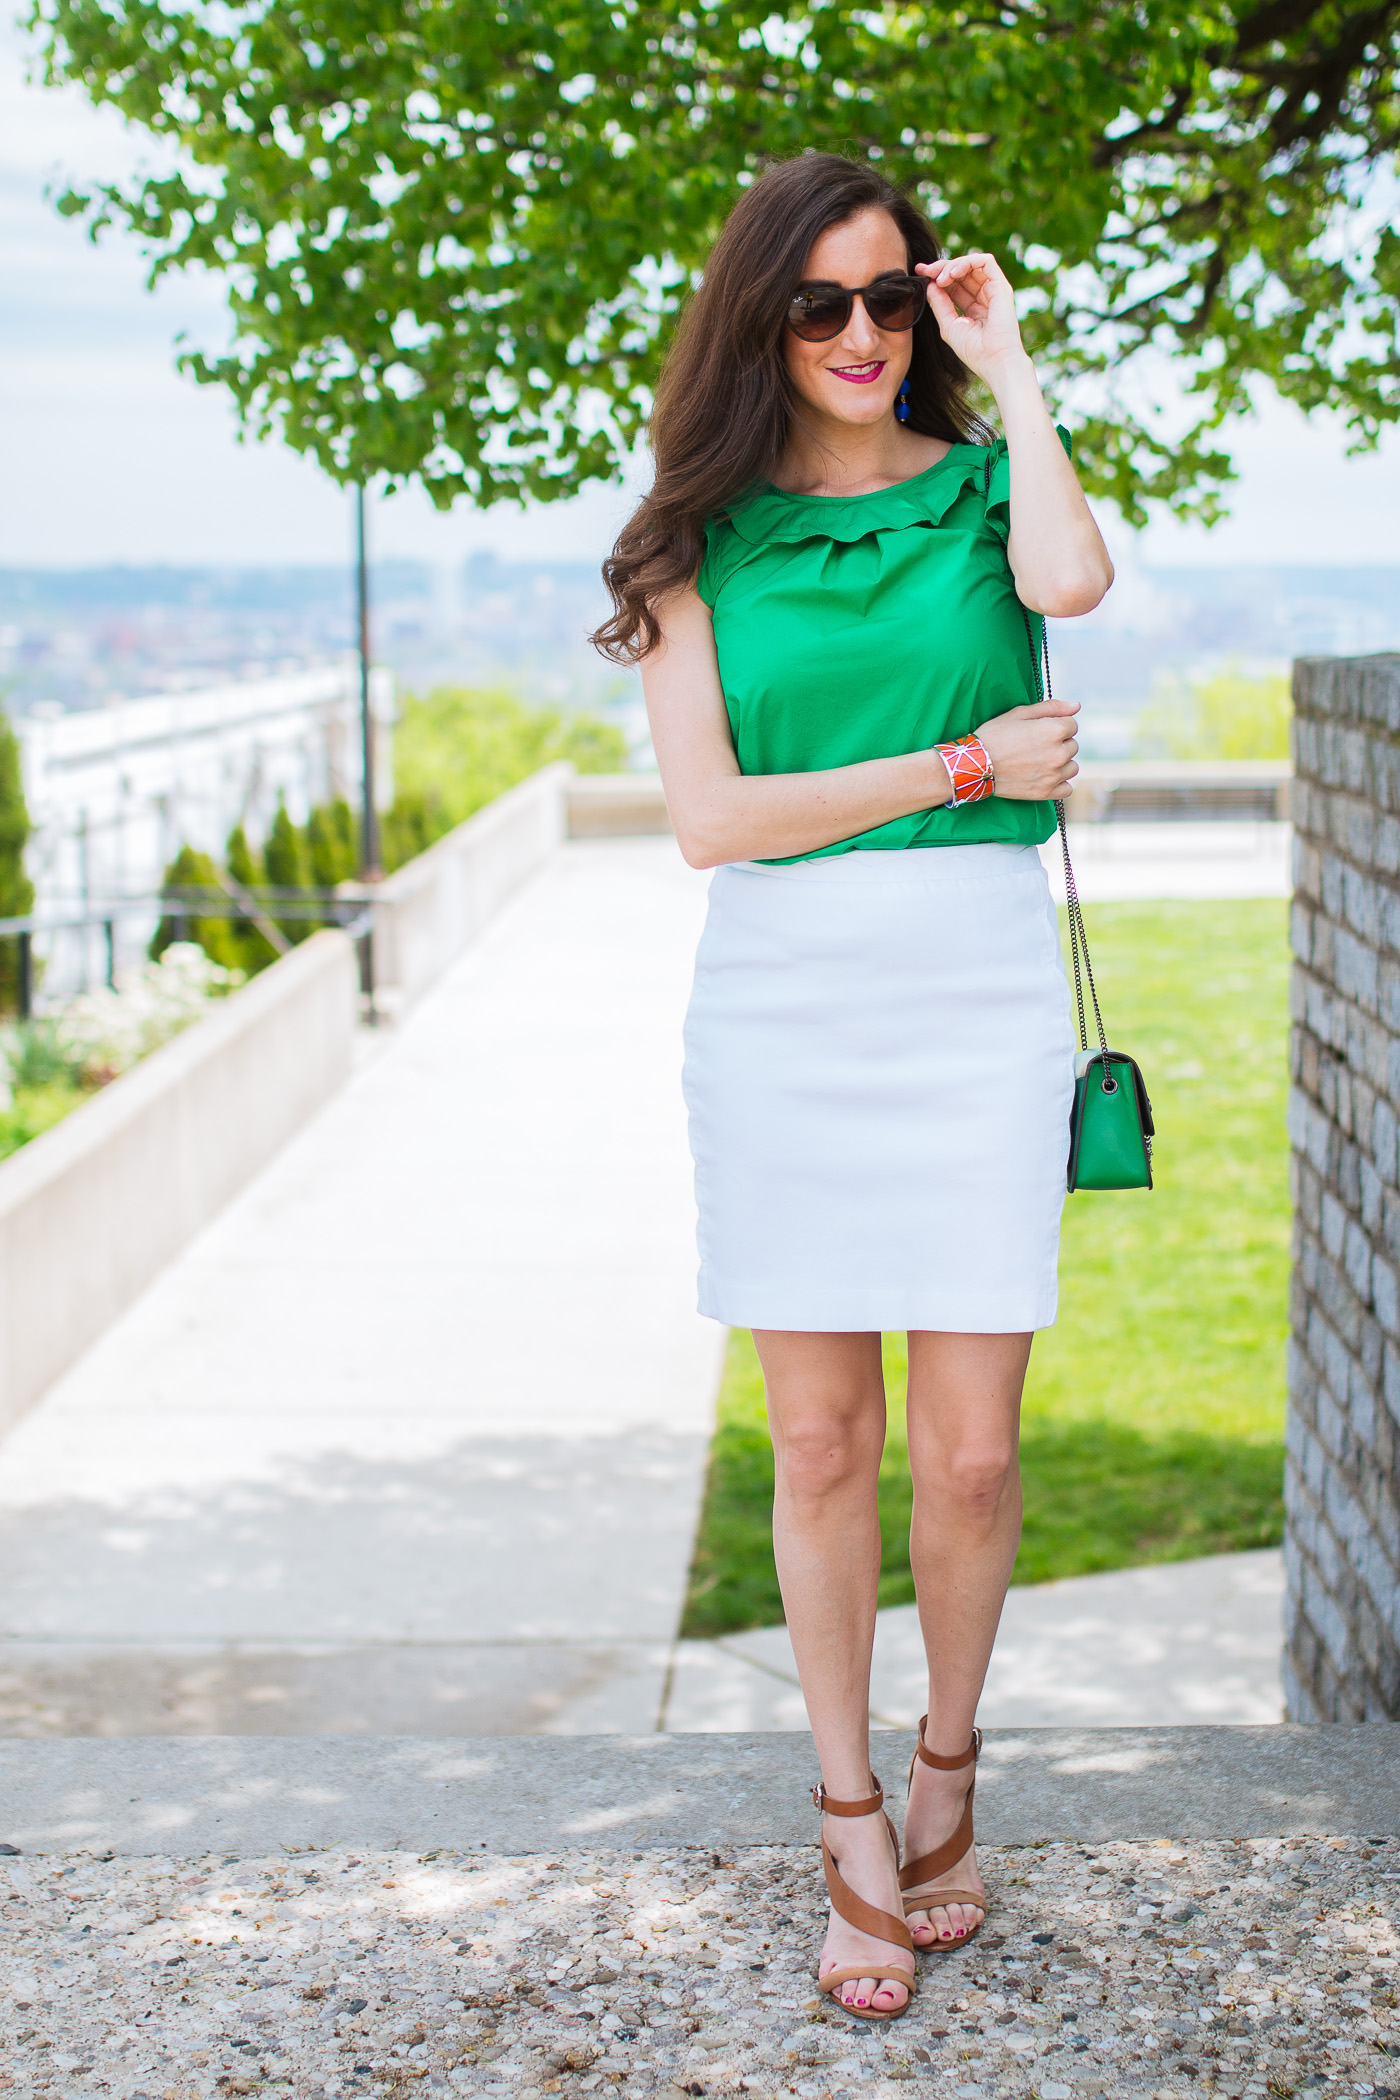 Colorful Outfit Ideas for Women